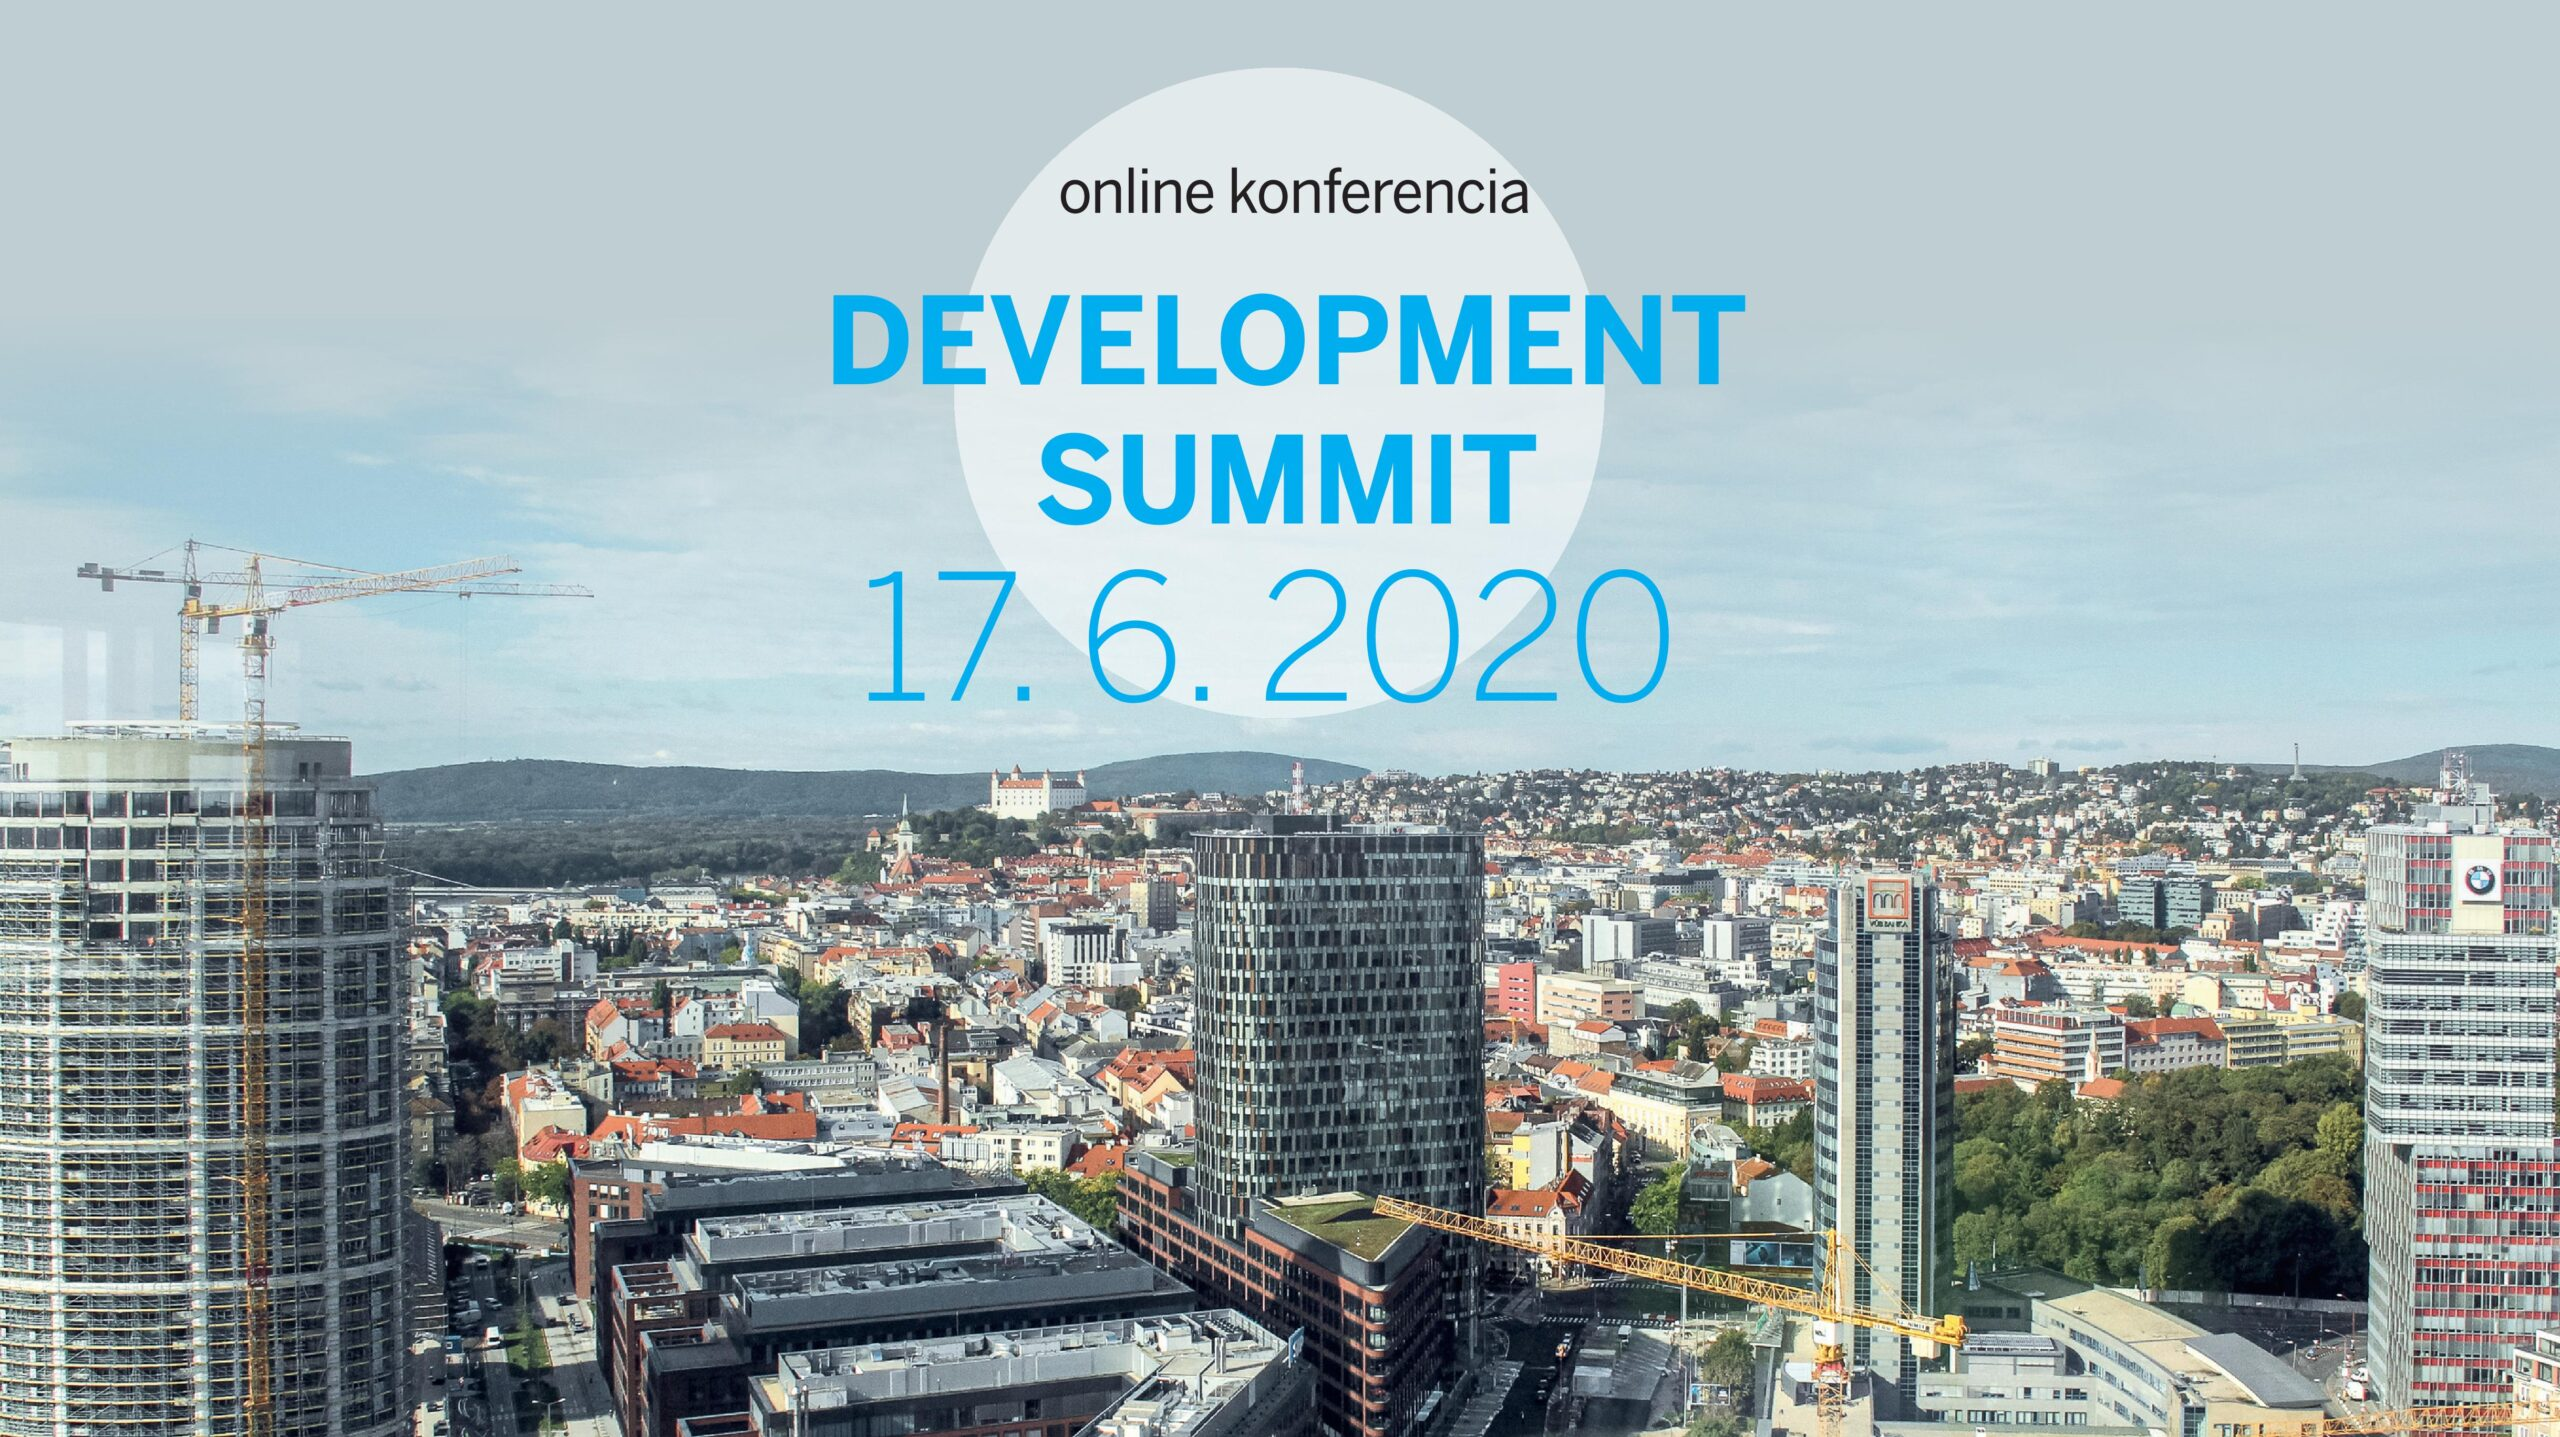 Development Summit 2020